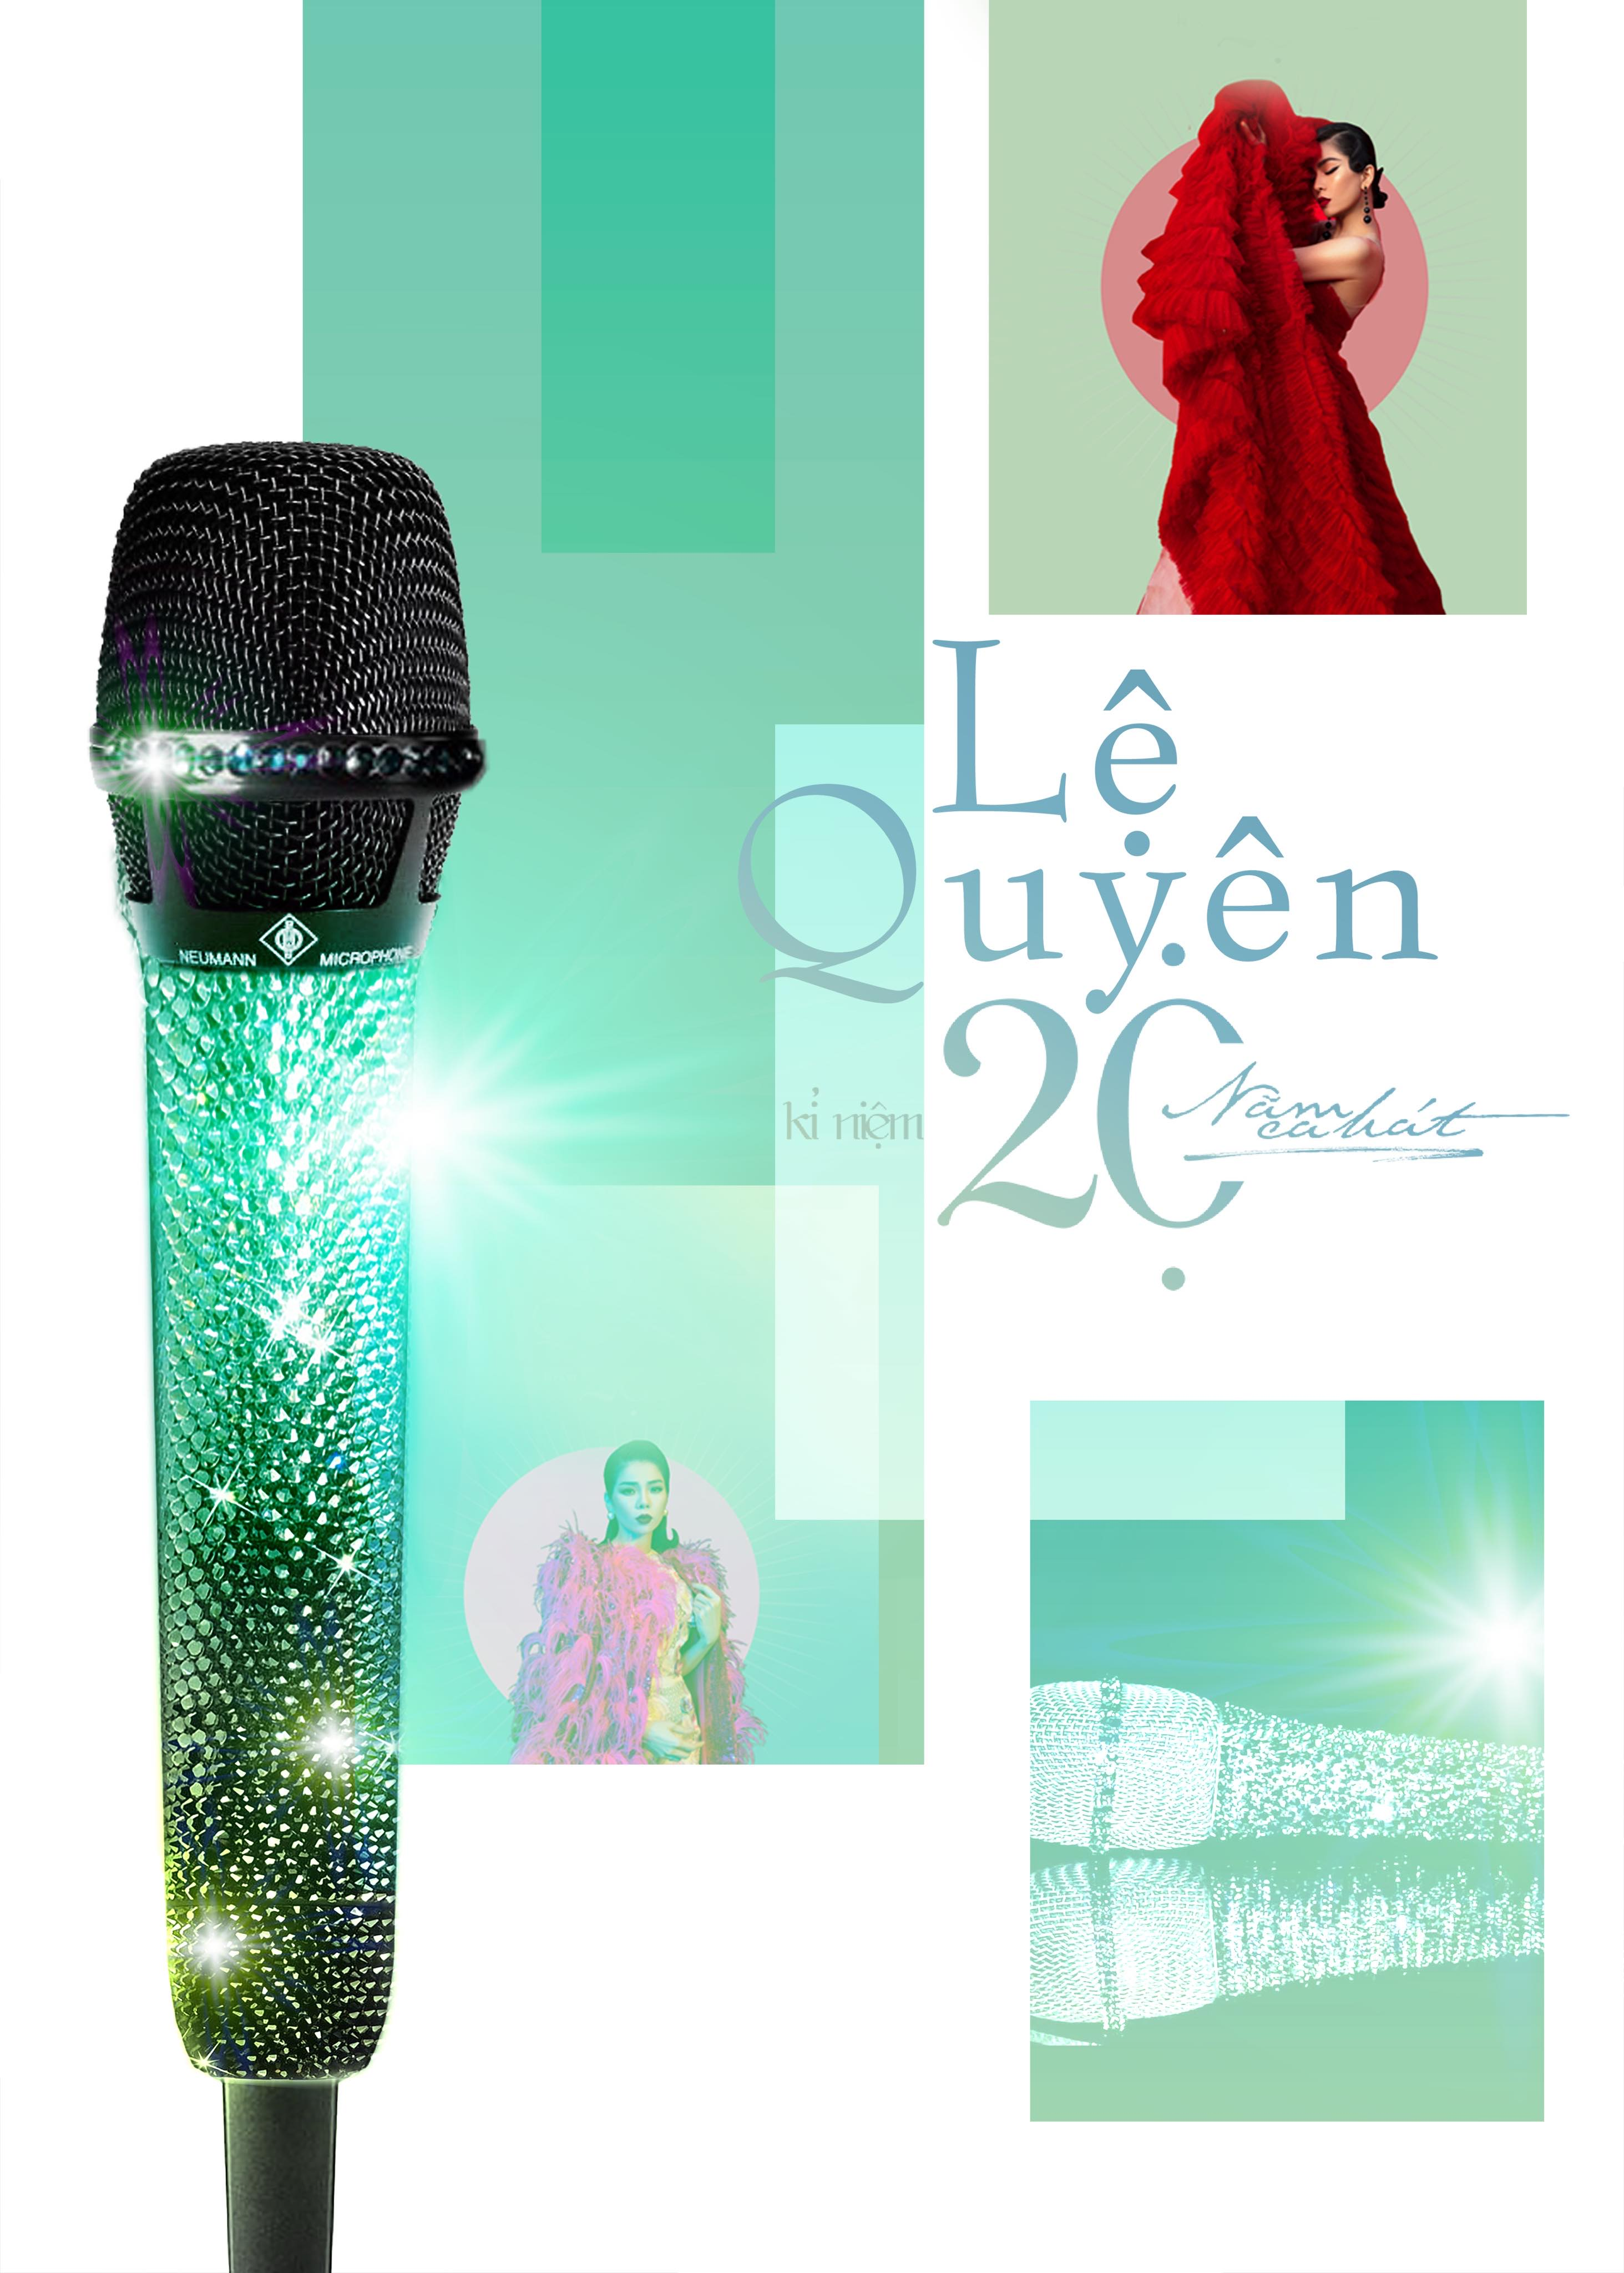 le quyen dung micro xin nhat the gioi celine dion, taylor swift su dung de hat trong q show 2 hinh anh 3